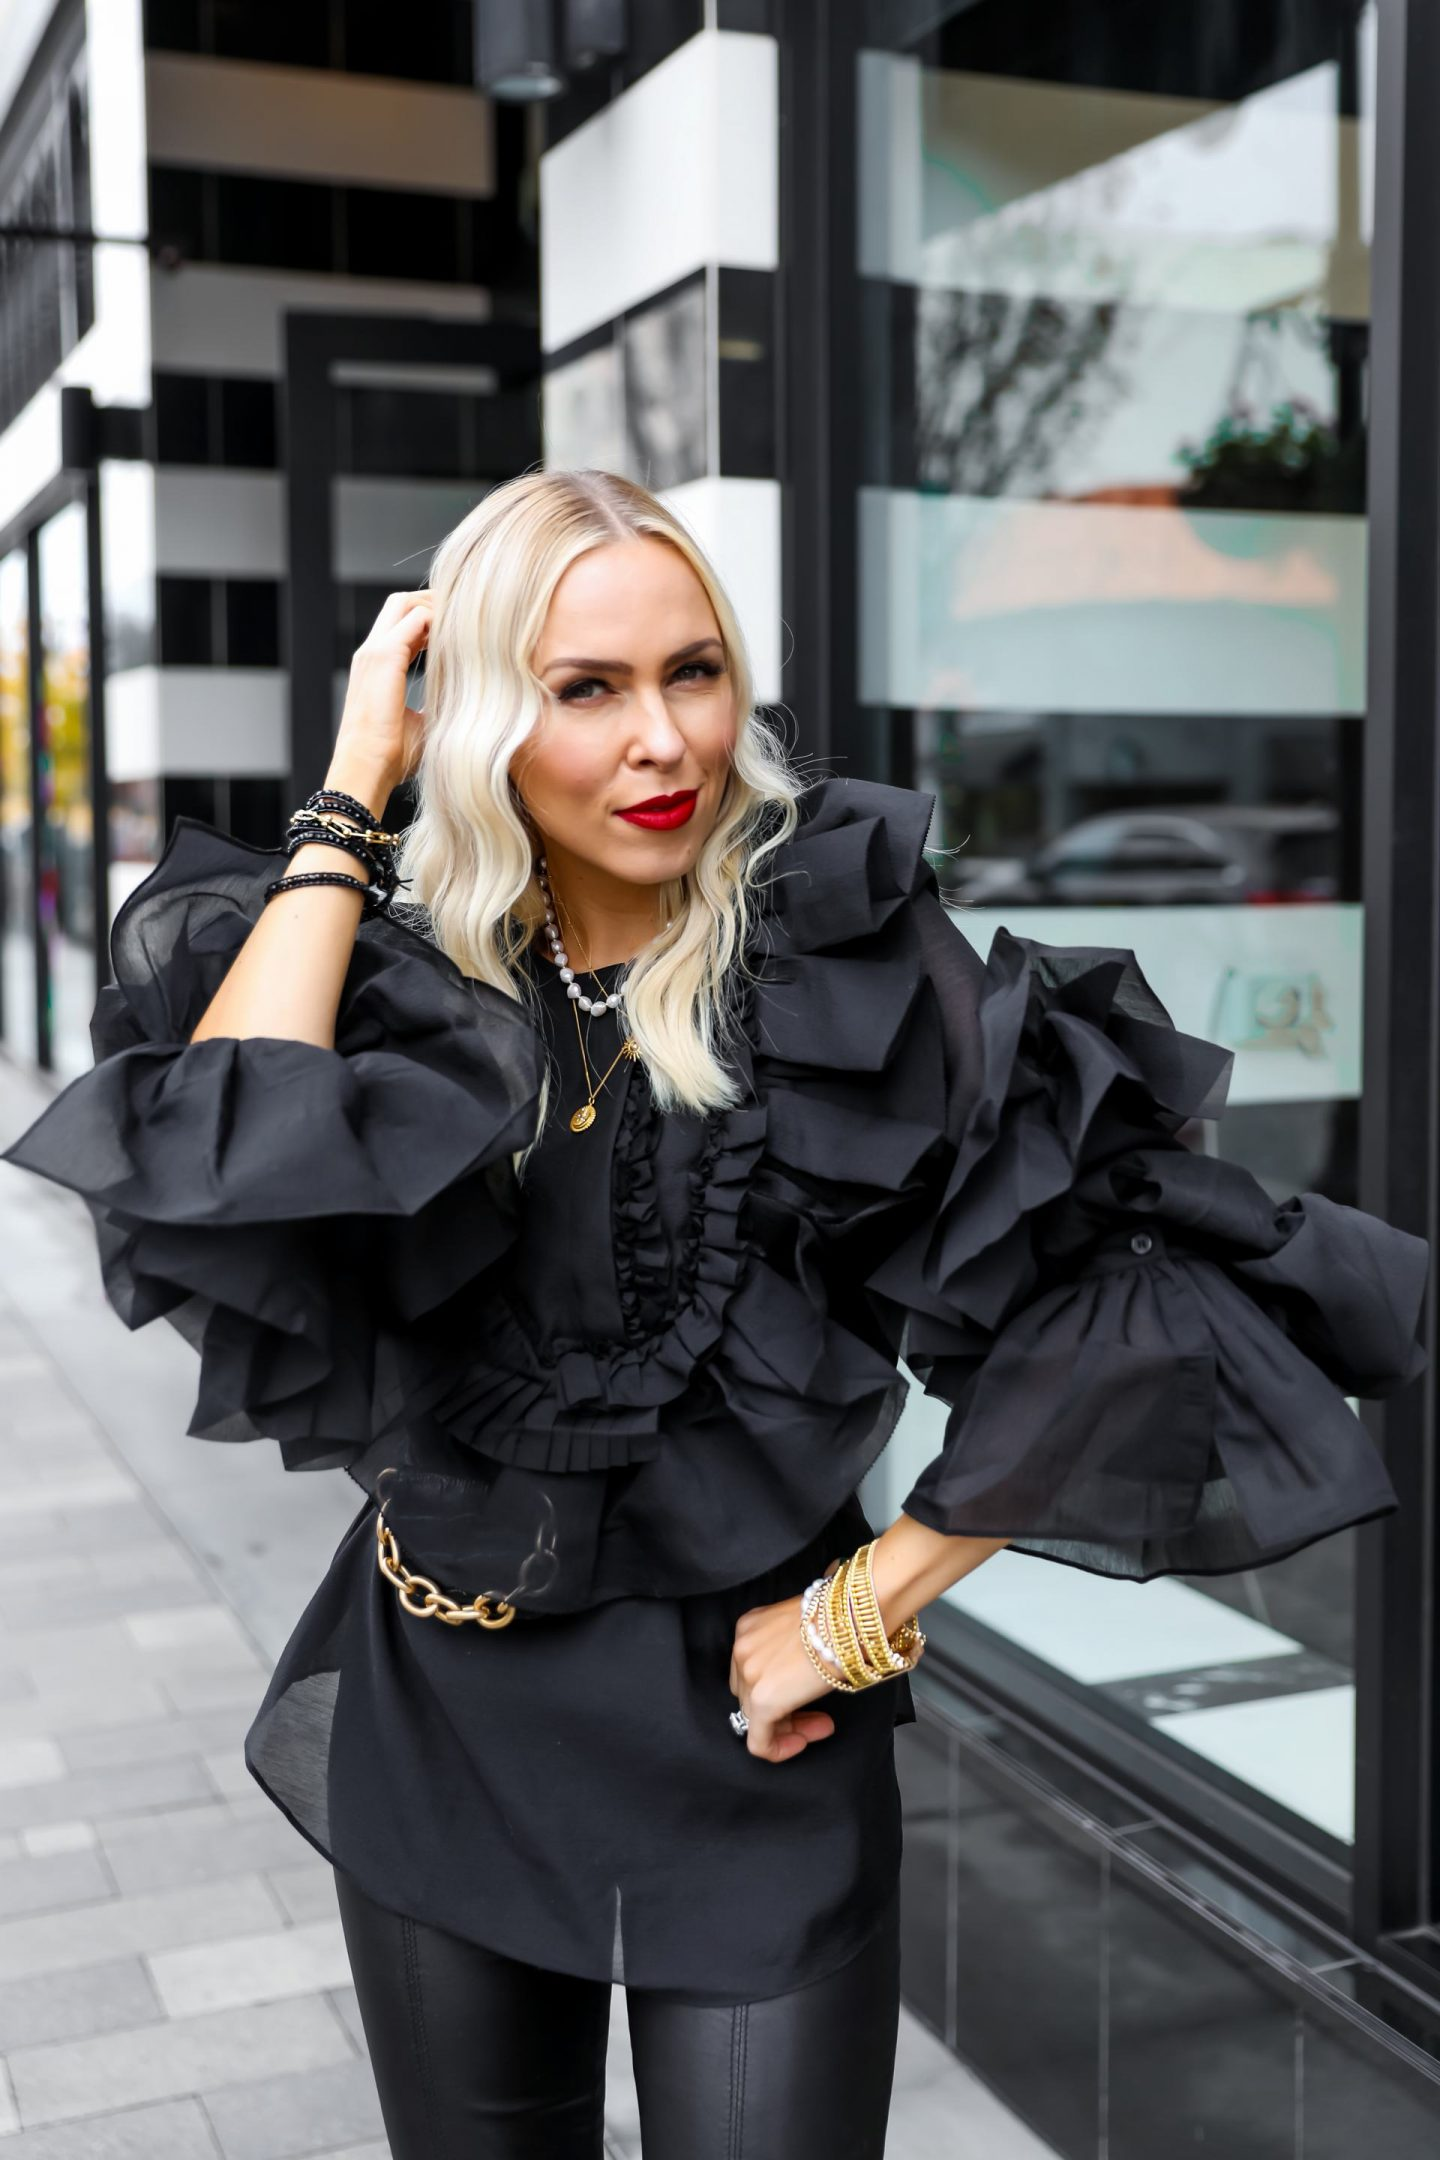 Victoria Emerson bracelet BOGO sale, styled in monochromatic black and teal wearing H&M studio collaboration ruffle top. Featured by San Francisco fashion blogger Lombard & Fifth.